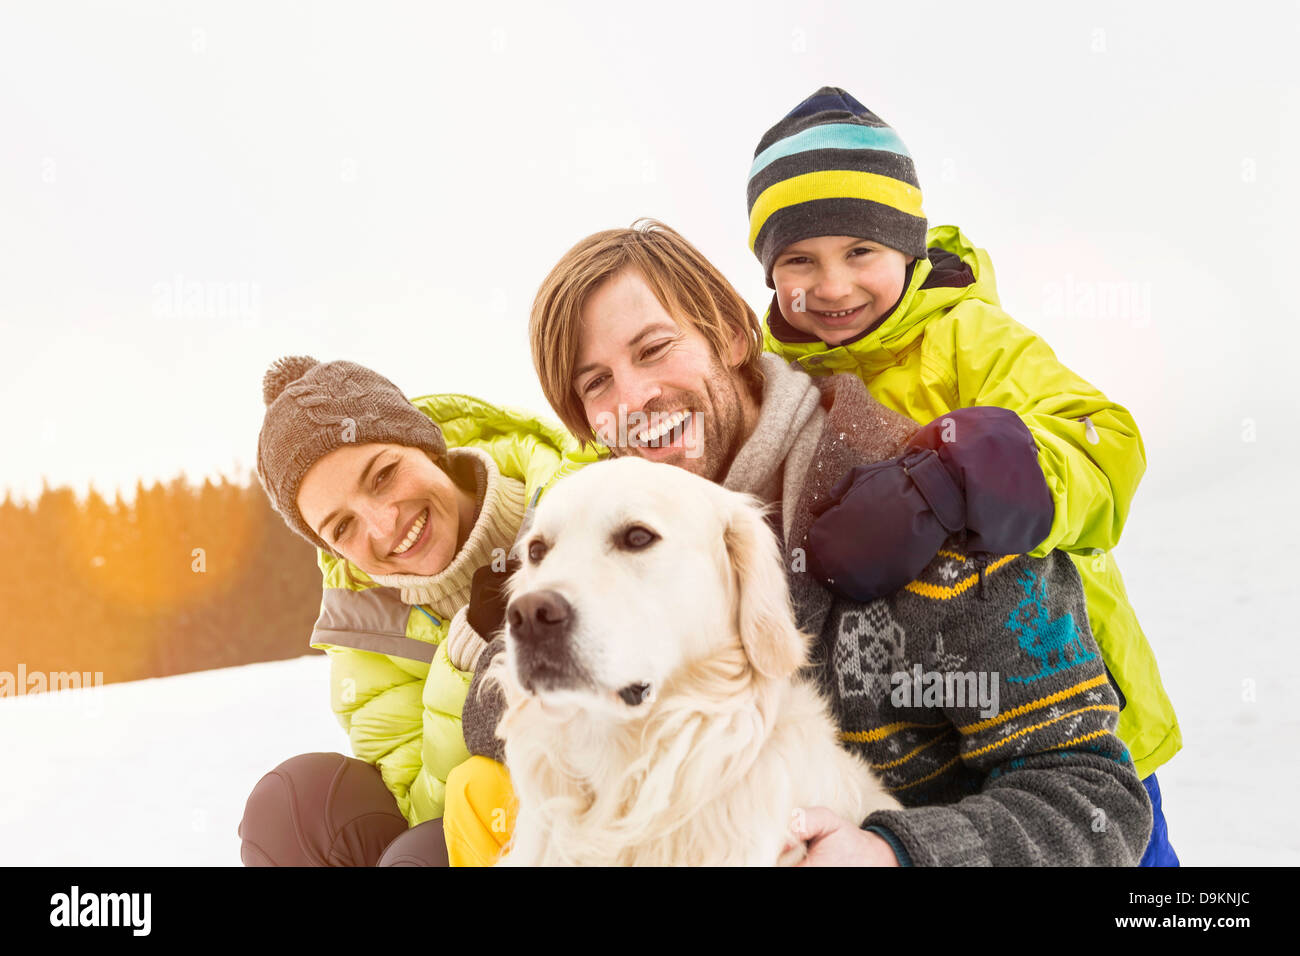 Parents and son with dog in snow - Stock Image